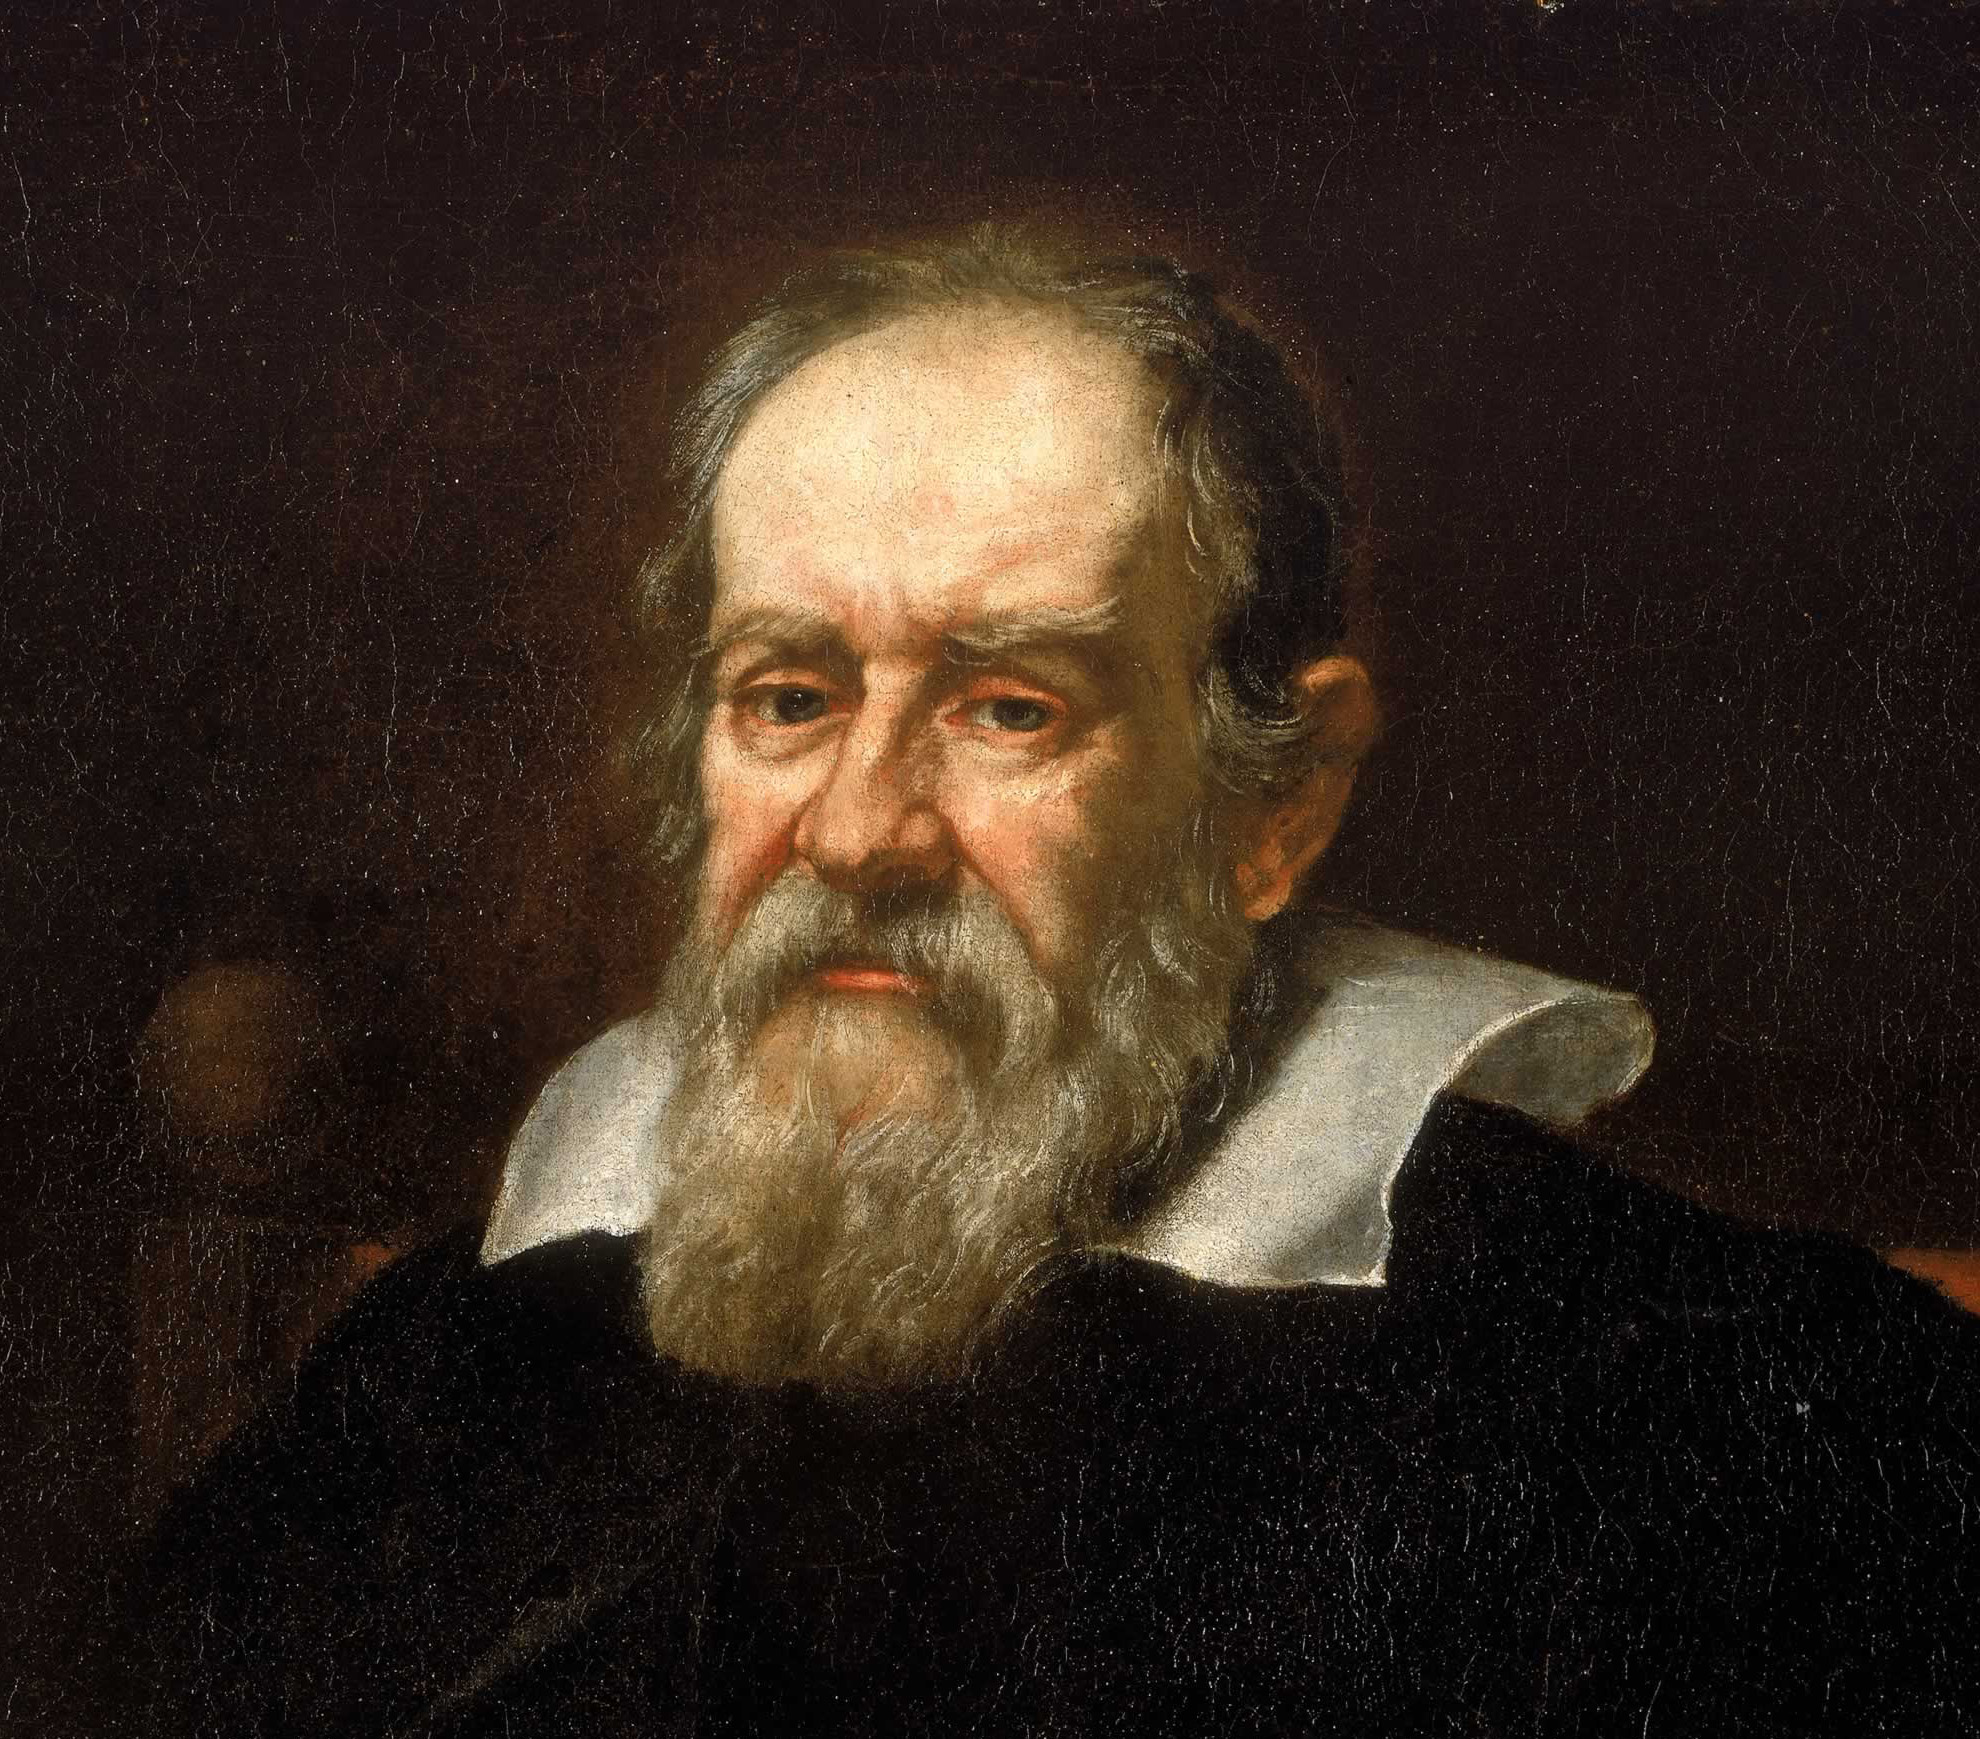 galileos discovery put the catholic church into unrest